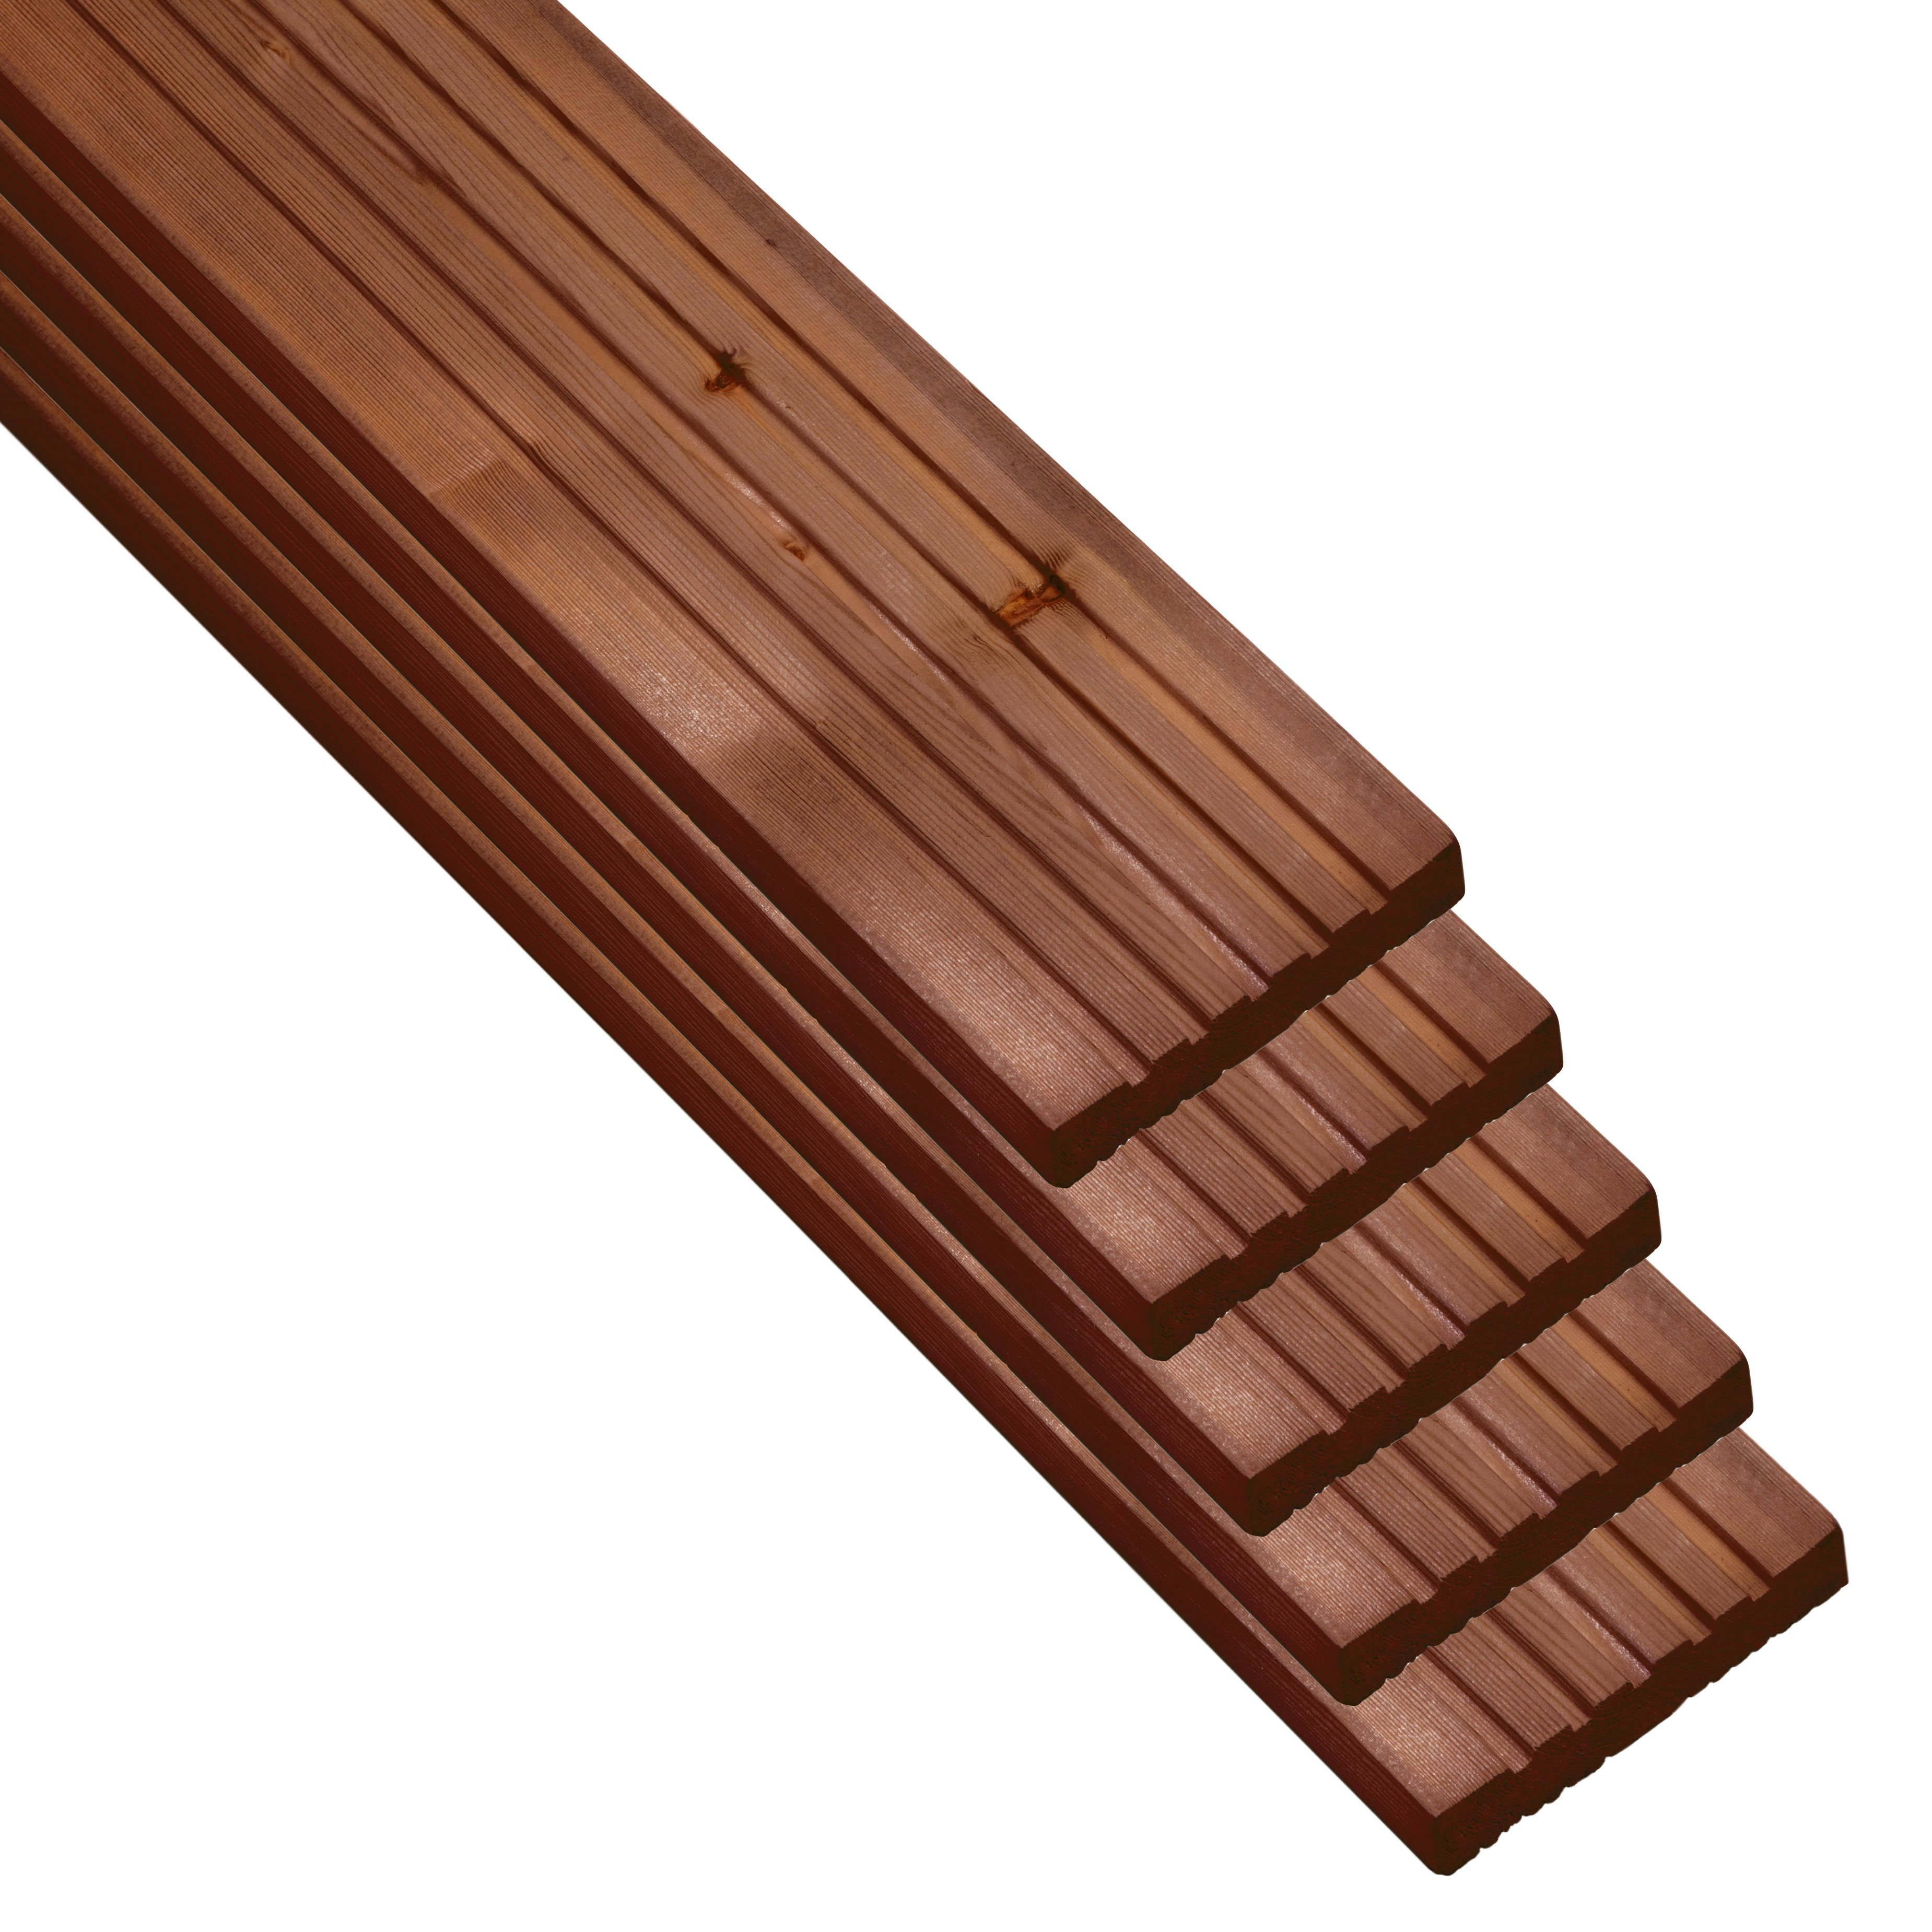 Value Brown Deck Board (t)24mm (w)120mm (l)2400mm, Pack Of 5